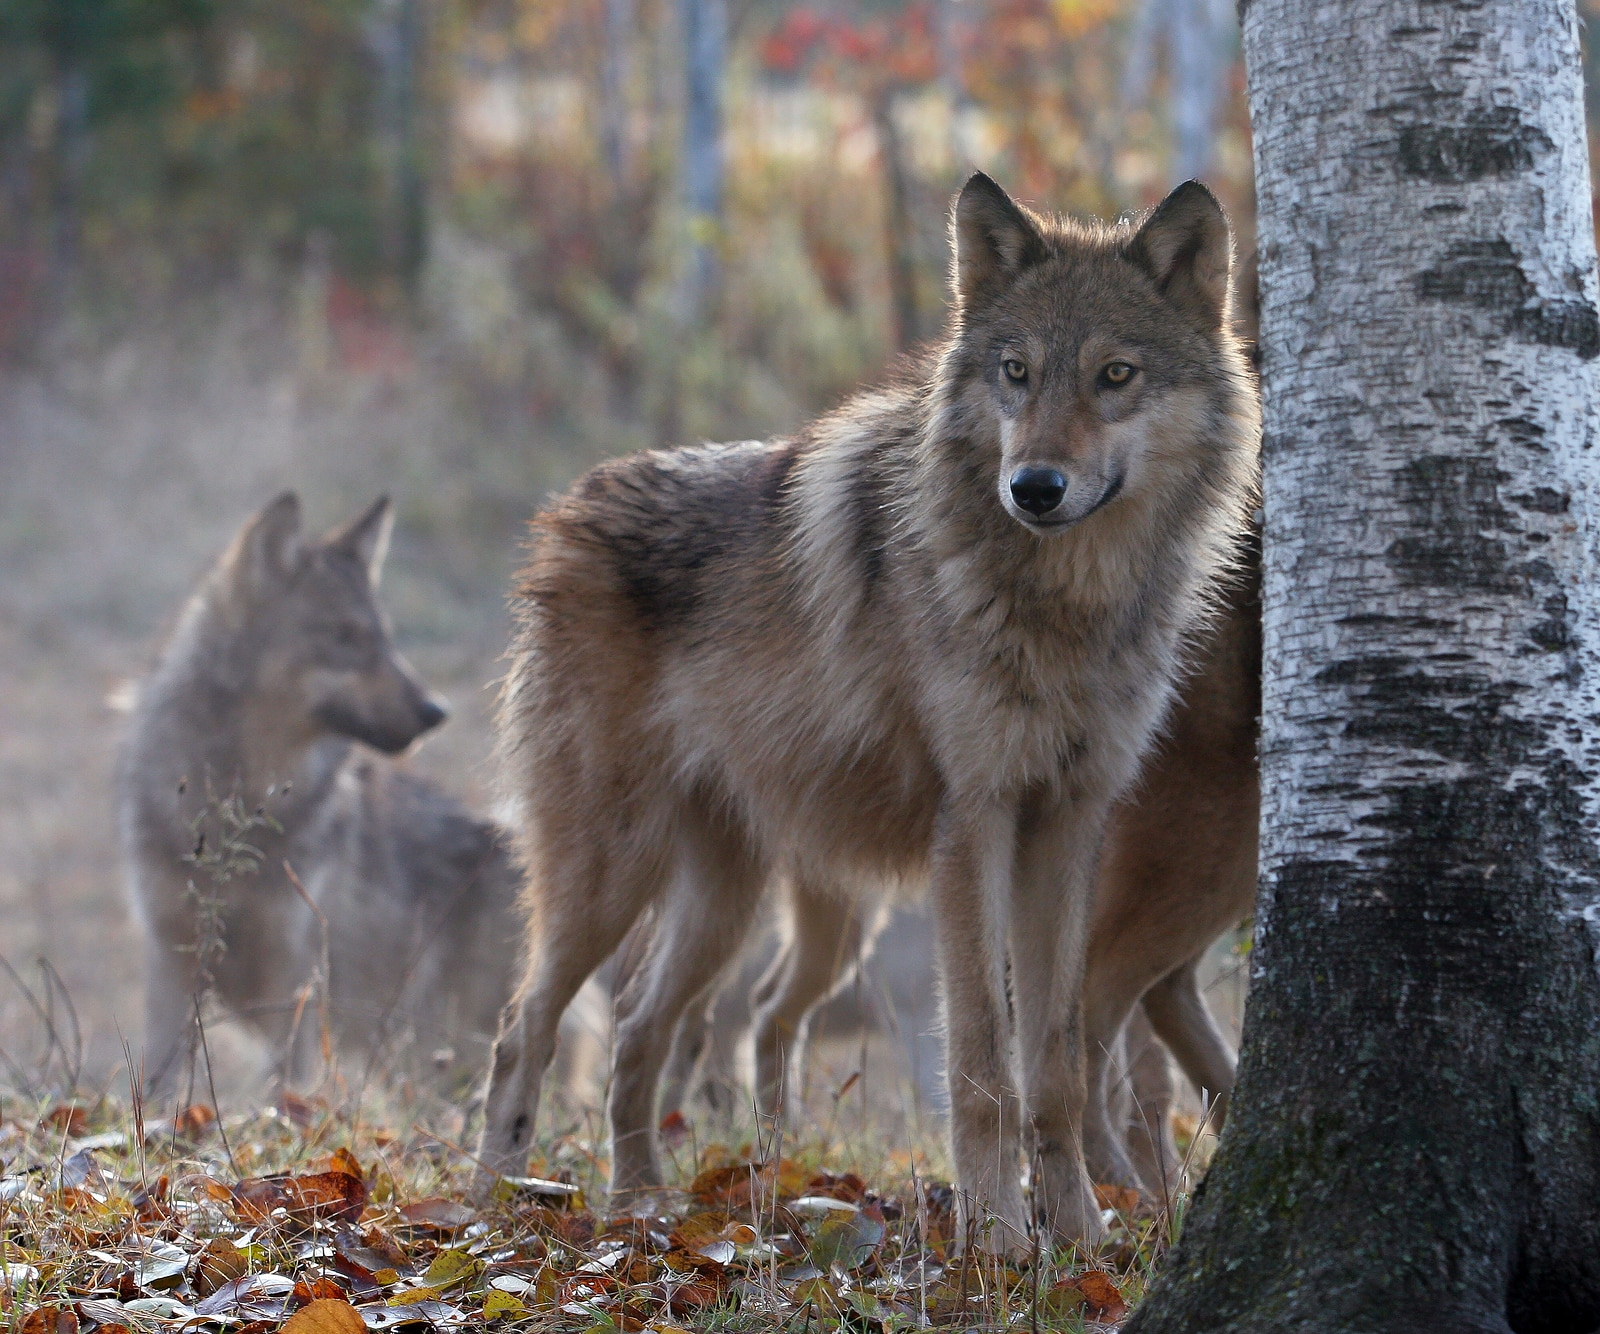 Wolf pack on cool, fall morning. Soft focus with shallow depth of field. Focus on the foreground. Backlit.